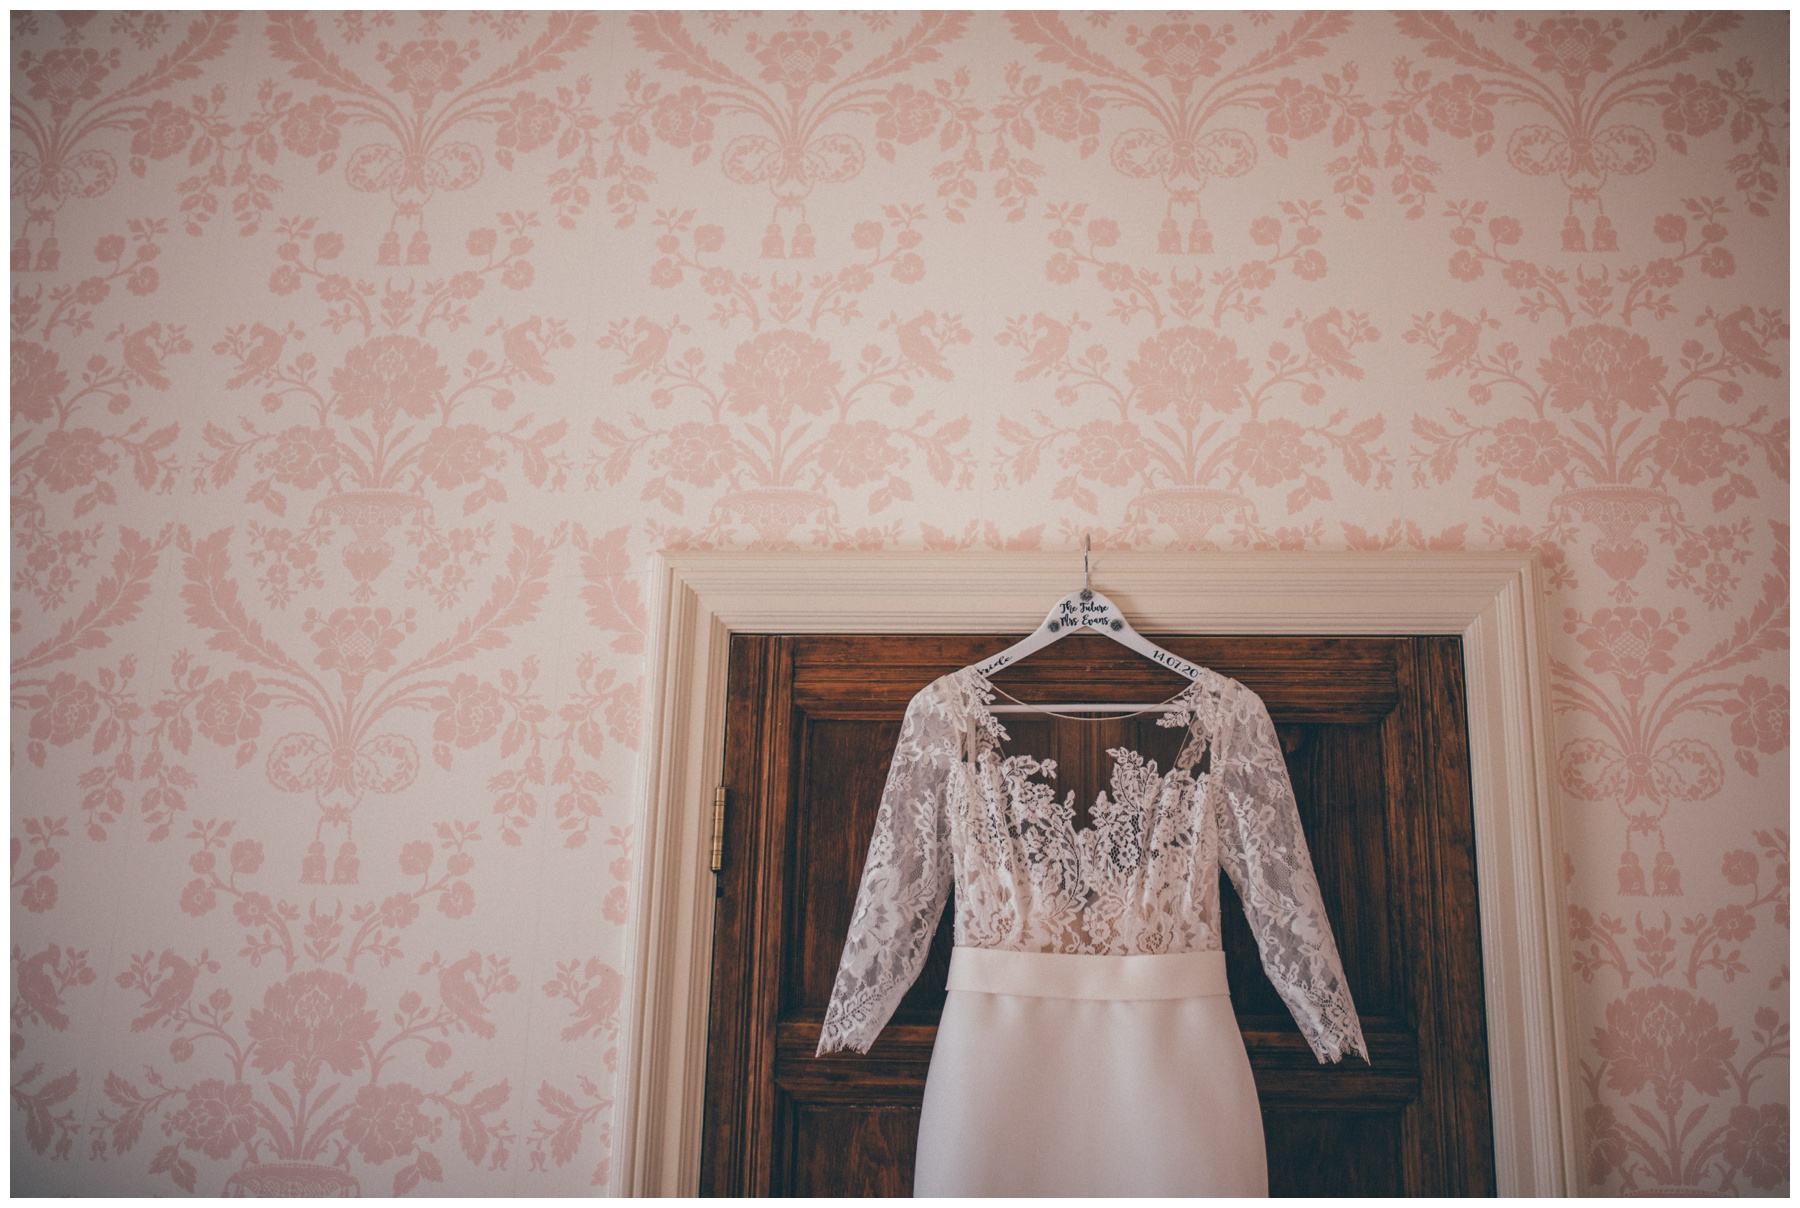 Wedding dress hung up in the bridal suite at Tilstone House in Cheshire.